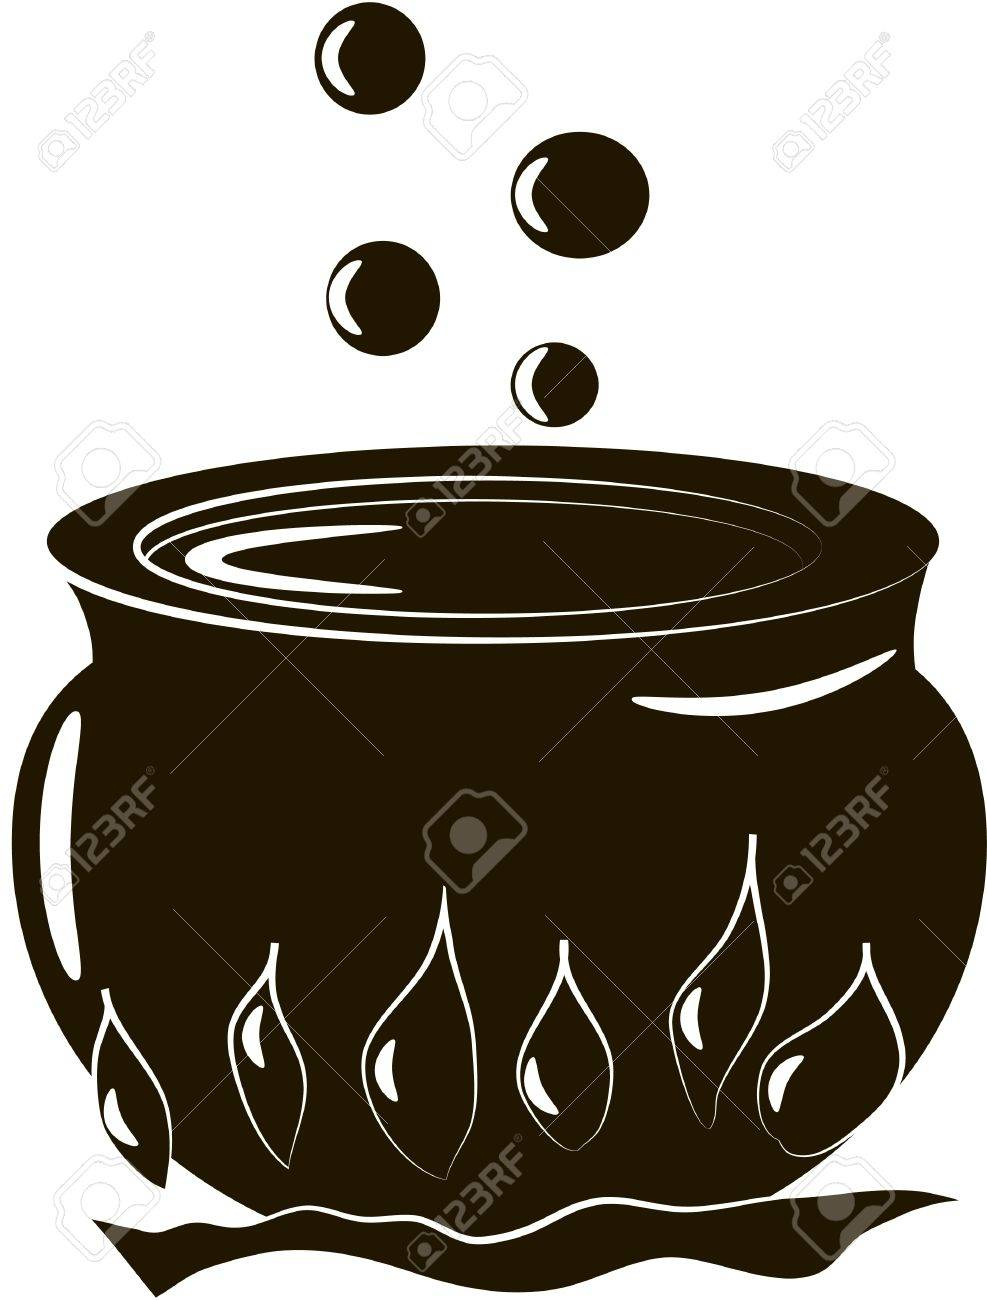 Halloween Cauldron Royalty Free Cliparts, Vectors, And Stock ...